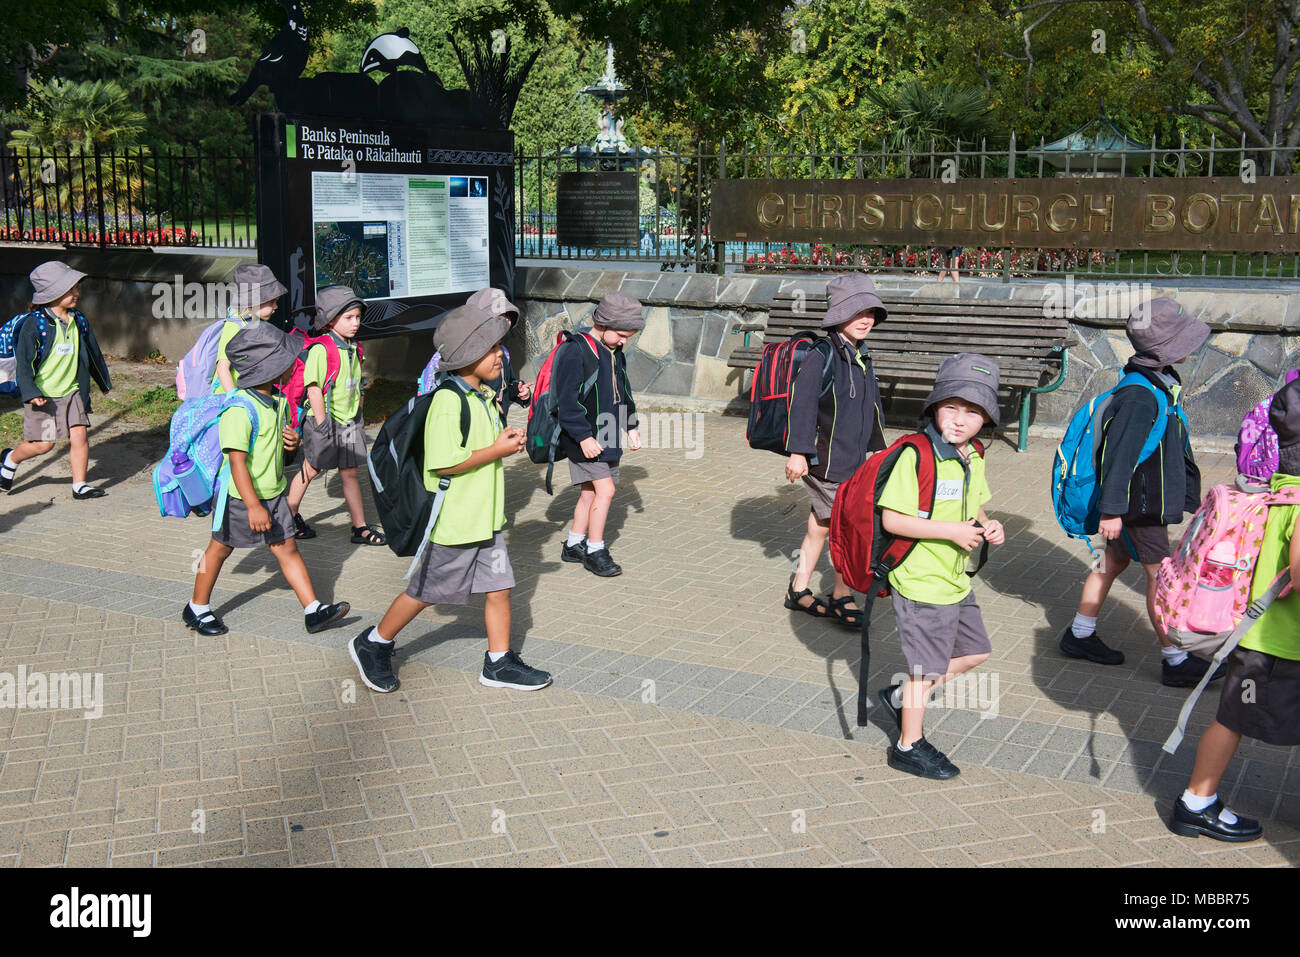 Schoolchildren on a field trip to the Canterbury Museum, ChristChurch, New Zealand - Stock Image